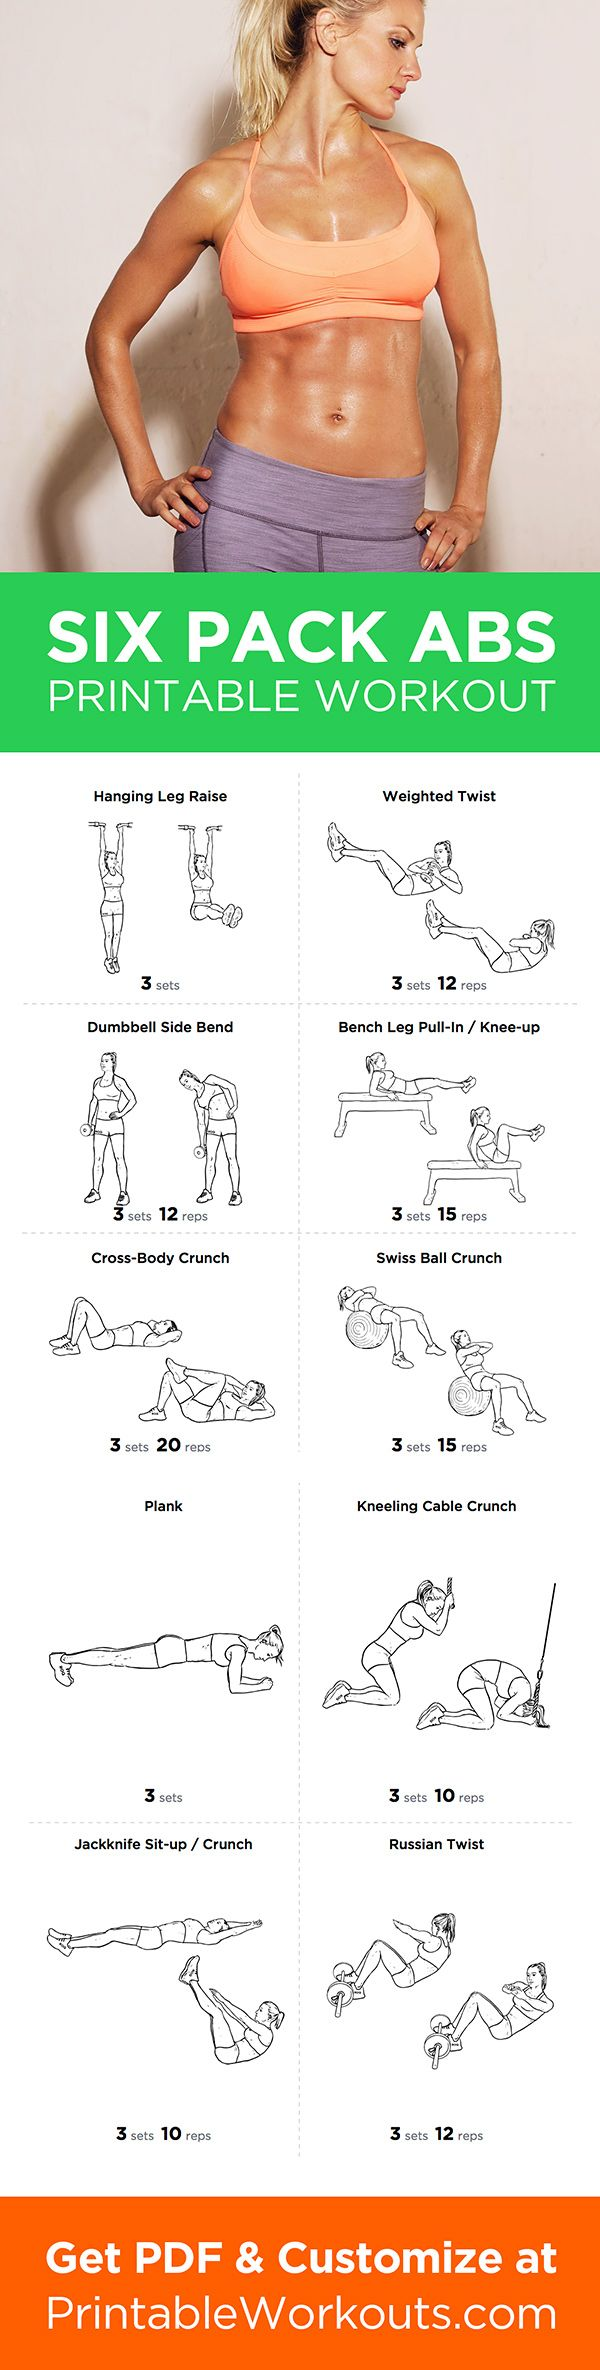 Printable Workout To Customize And Print Six Pack Abs Abdominal Routine For Men Women